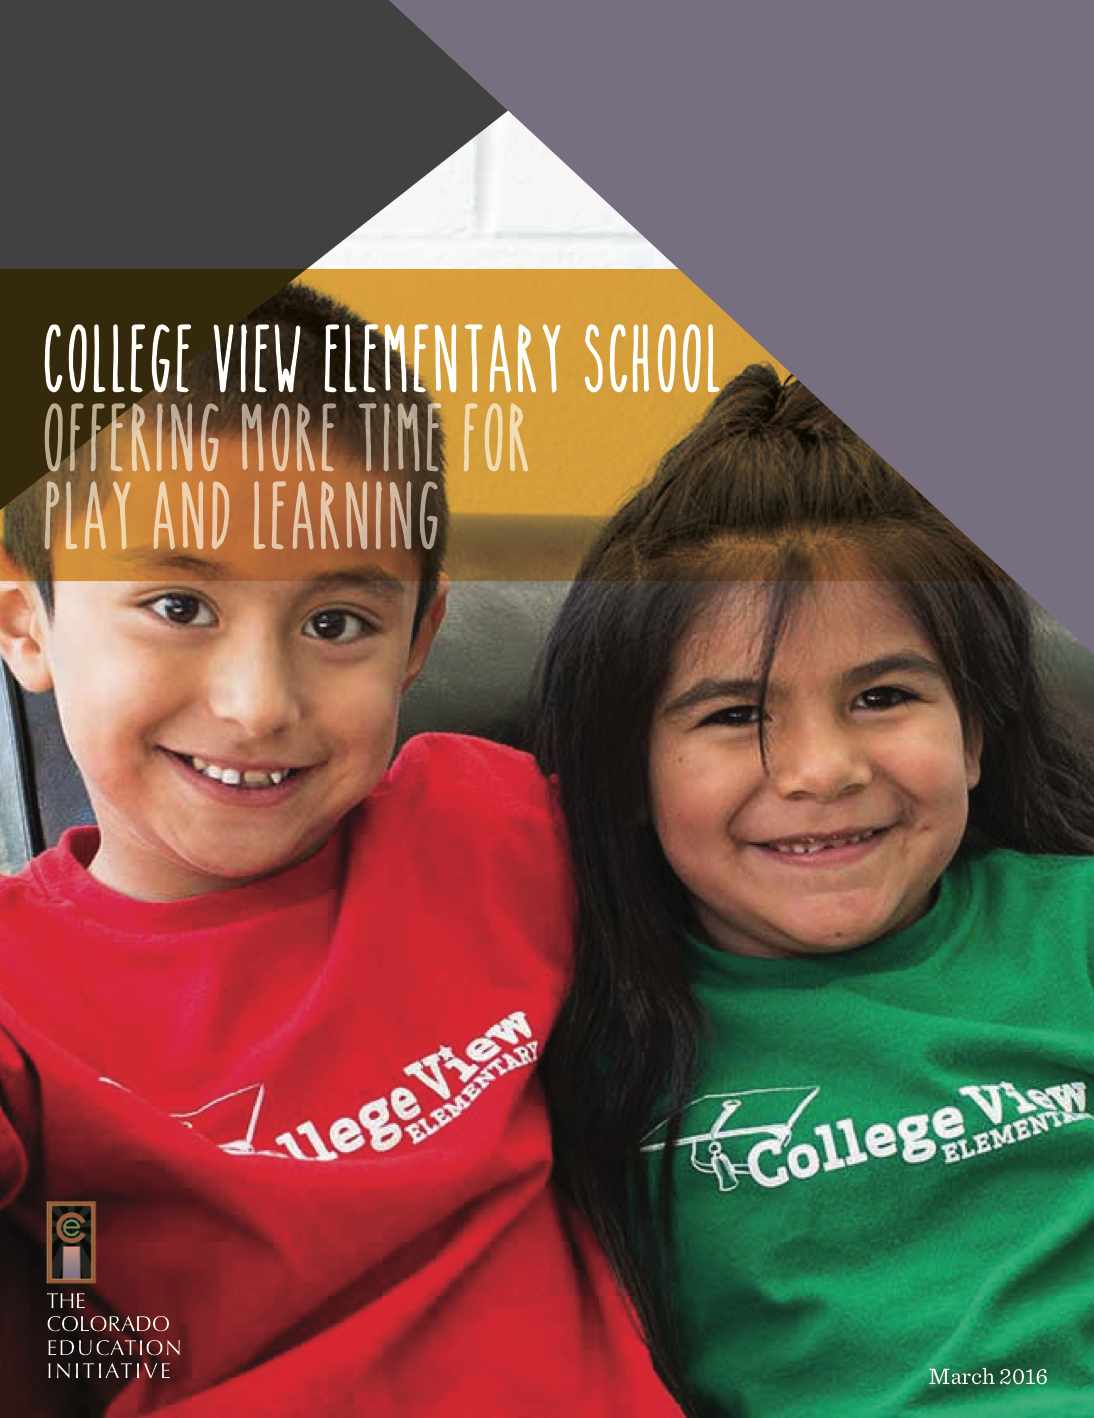 college view elementary school: offering more time for play and learning, march 2016